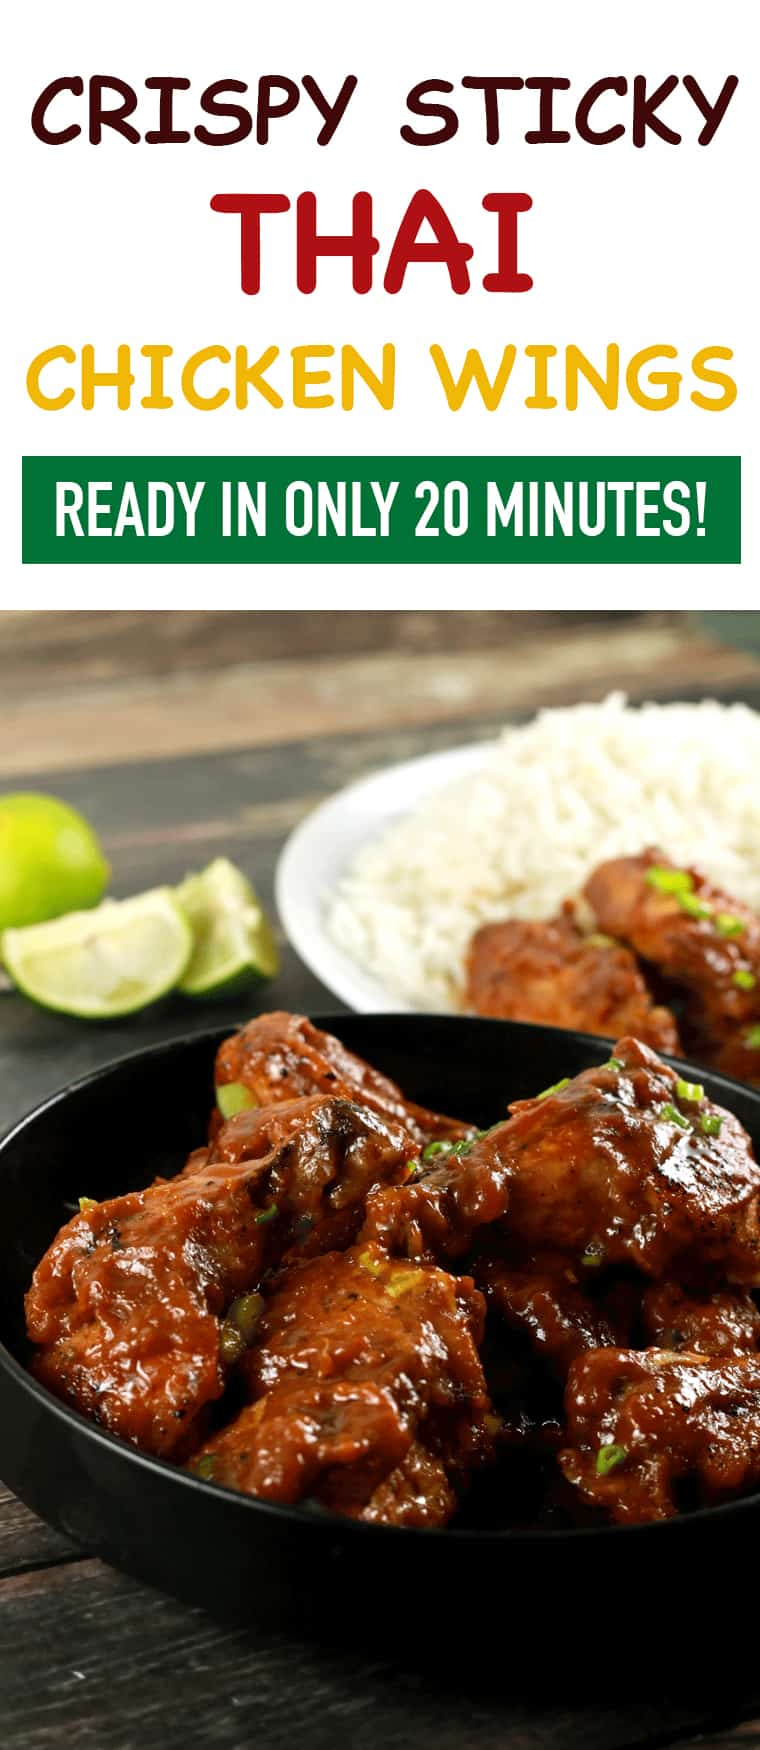 Crispy Sticky Thai Chicken Wings - These Thai chicken wings have a crispy outside coated with this spicy and delicious sticky sauce! It's so delicious that you'll be left licking your fingers in the end!! We absolutely LOVE it!  ScrambledChefs.com